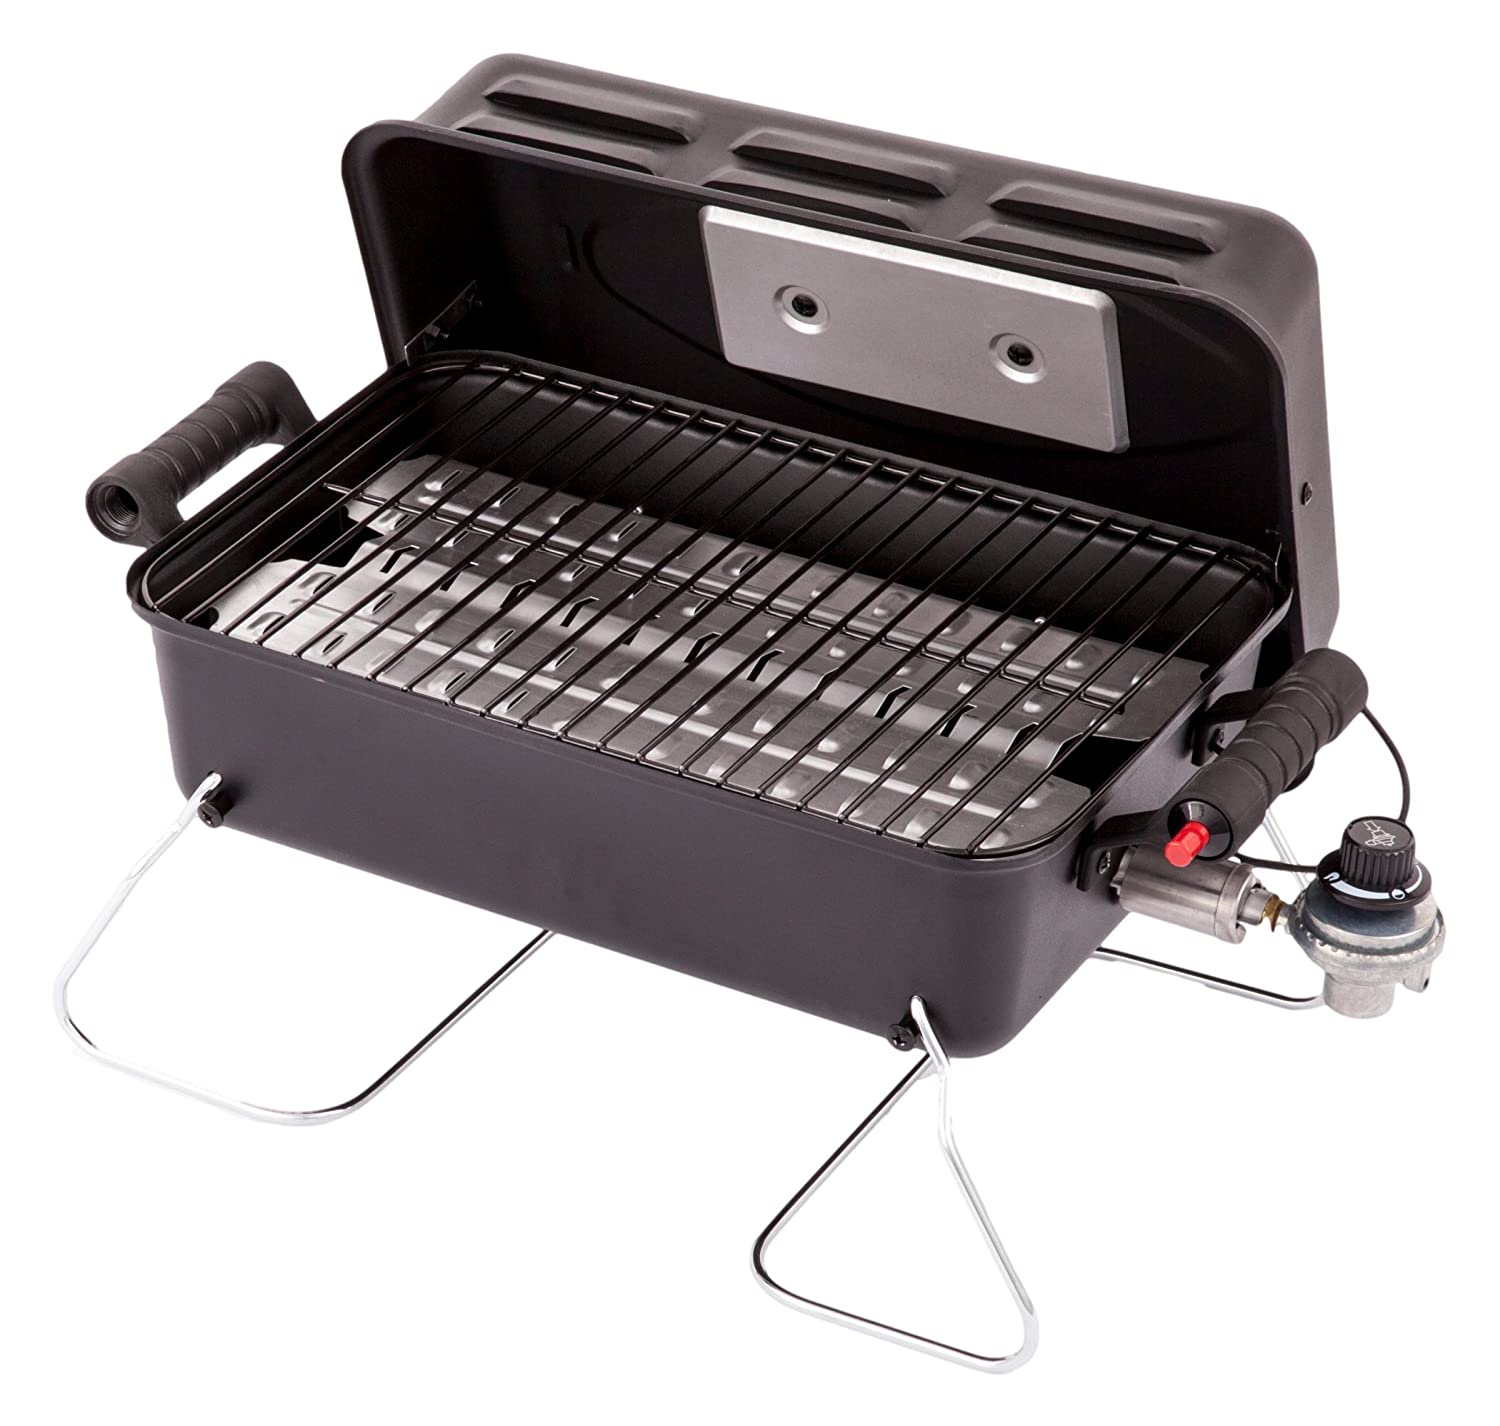 Ordinaire Amazon.com: Char Broil Deluxe Portable Liquid Propane Gas Grill: Garden U0026  Outdoor